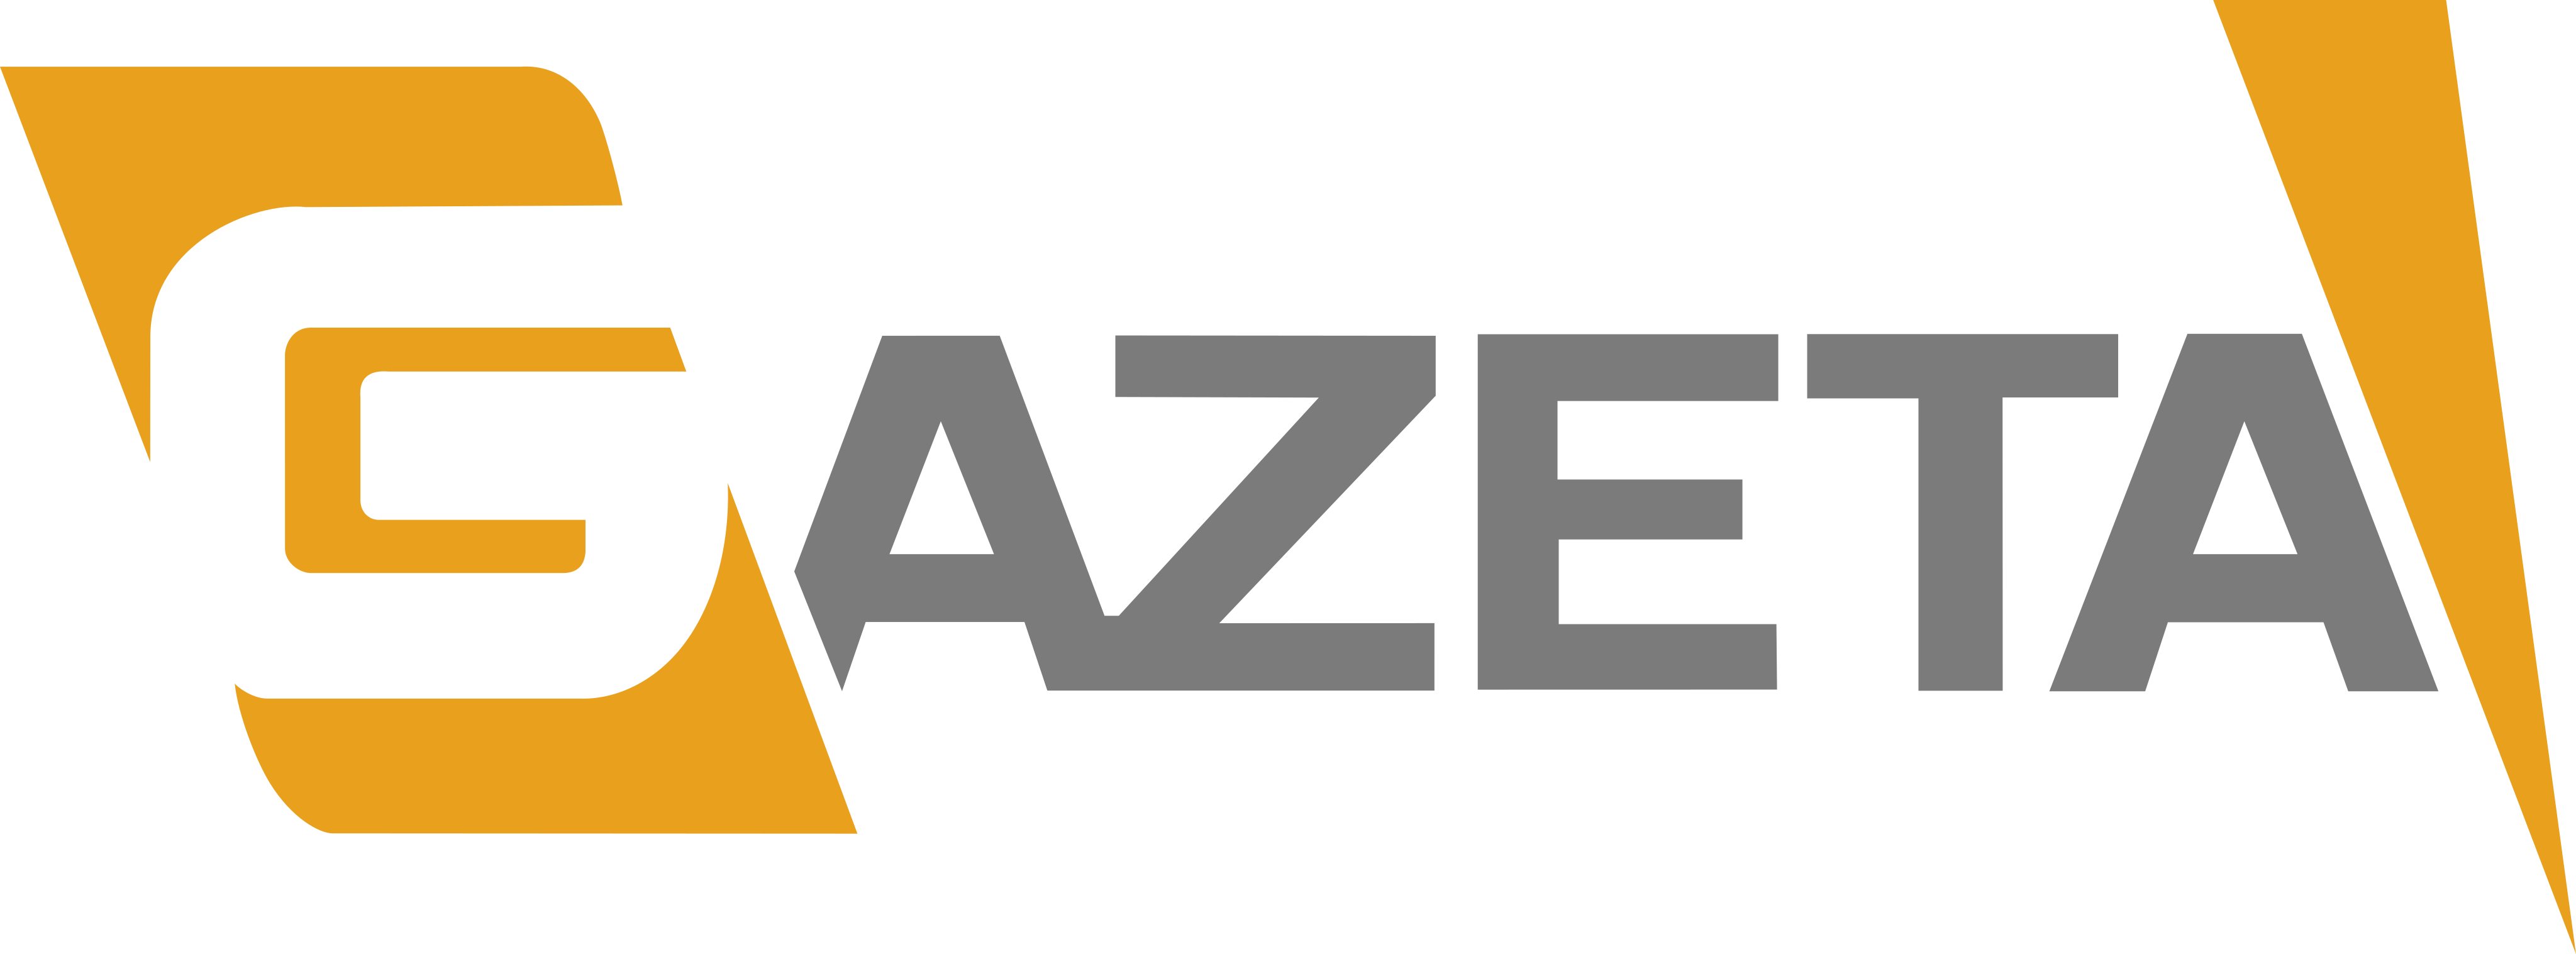 TV Gazeta Logo.